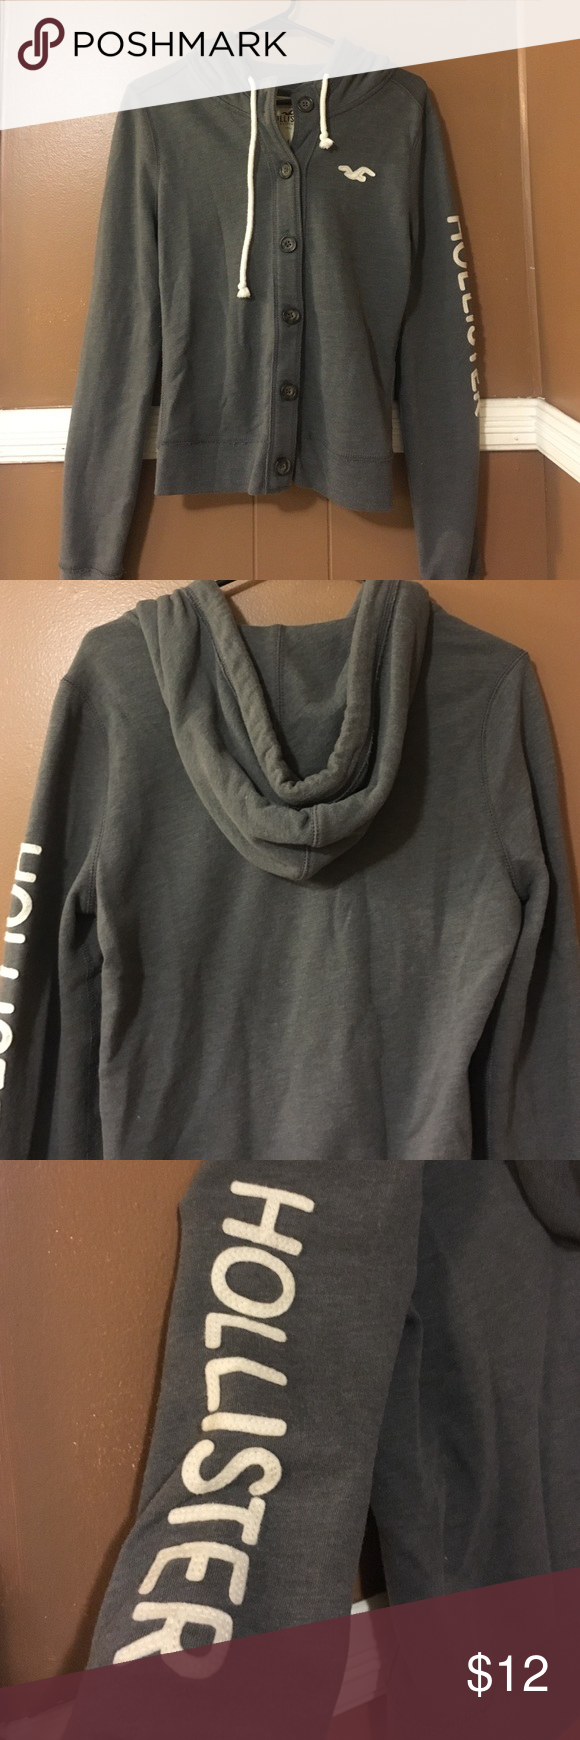 Hollister hooded sweater | Hooded sweater, Customer support and ...